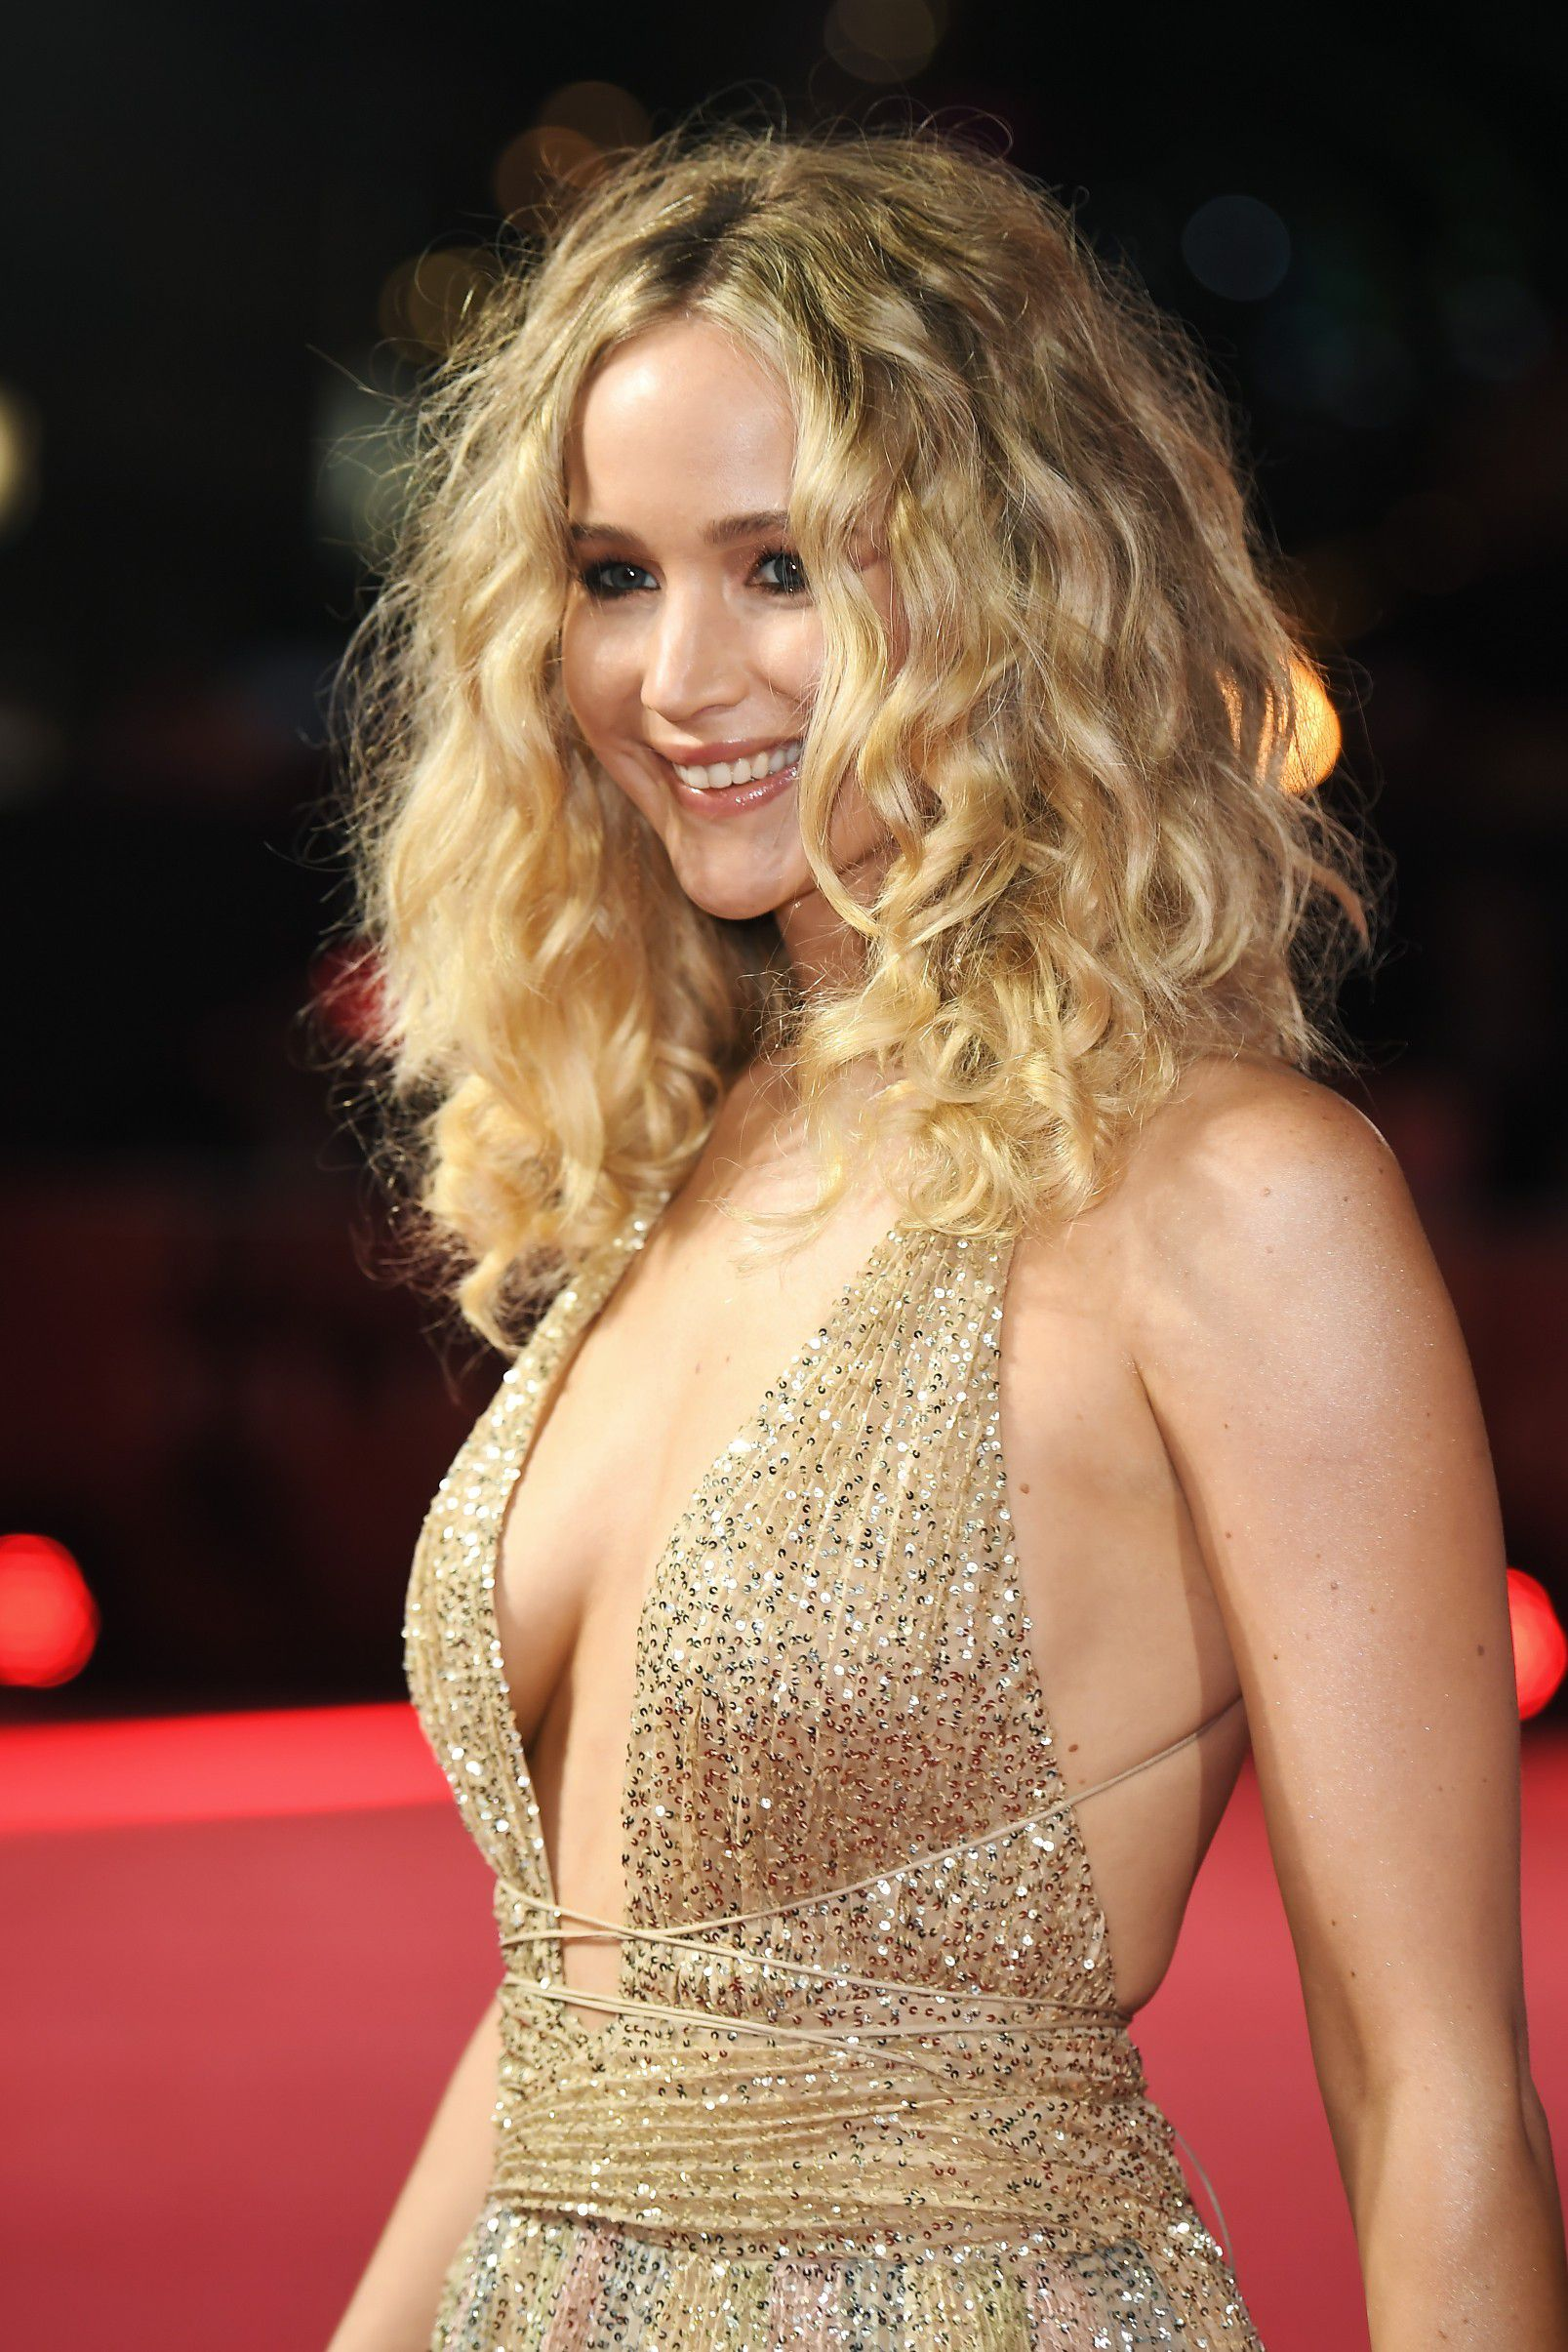 jennifer-lawrence-cleavage-at-red-sparrow-premiere-in-london-2112